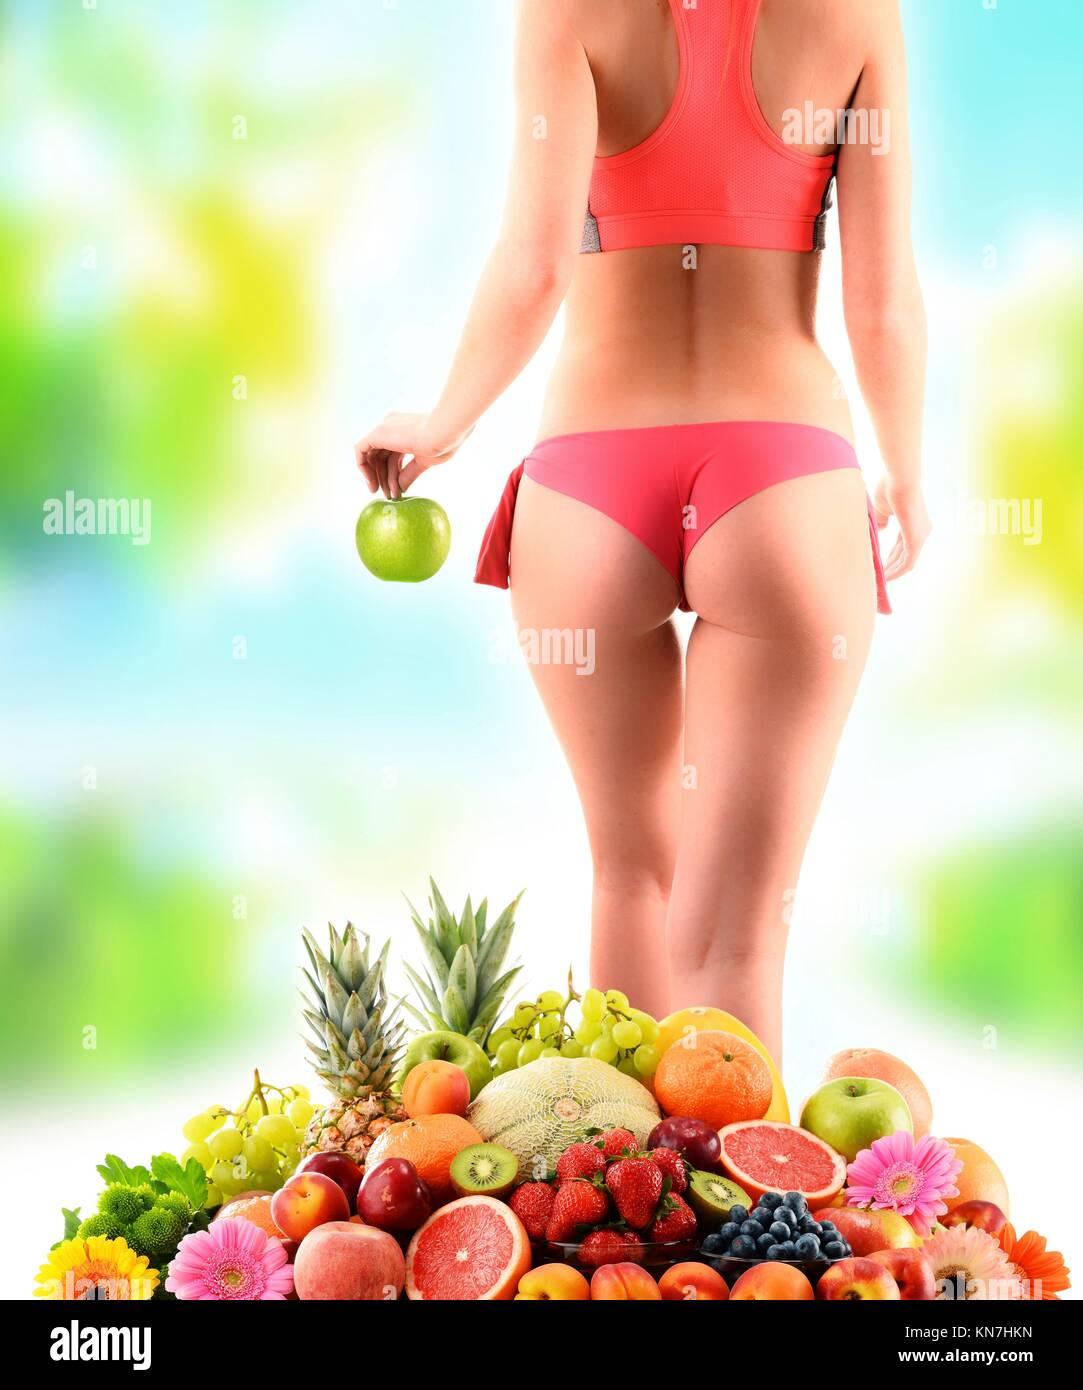 Weight loss. Slim woman holding an apple and composition with variety of fresh fruits. - Stock Image